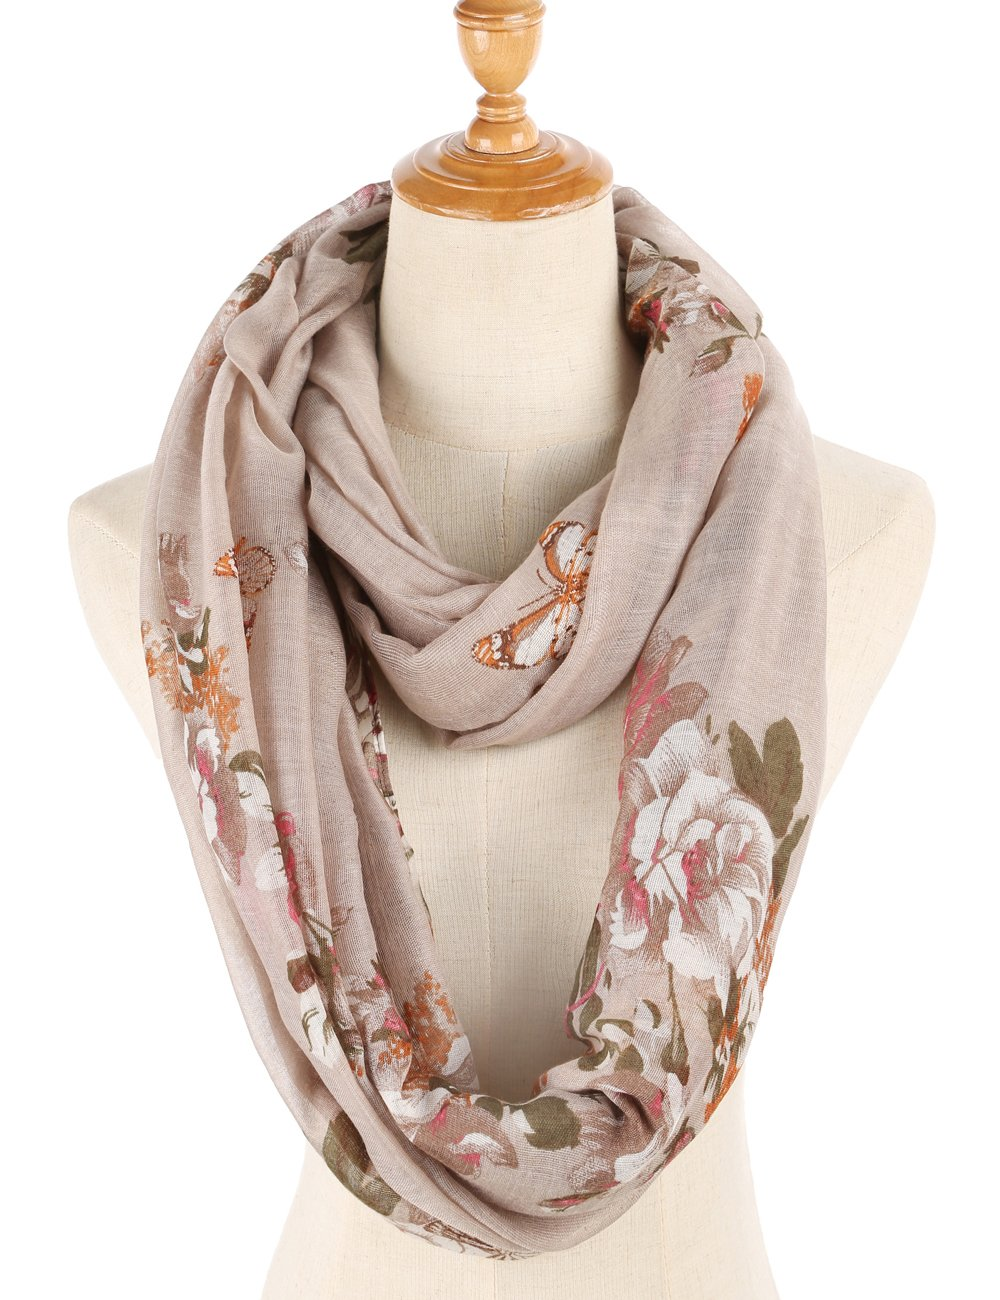 Infinity Scarfs for Women Loop Circle Fashion Scarf Floral Print Lightweight Scarves